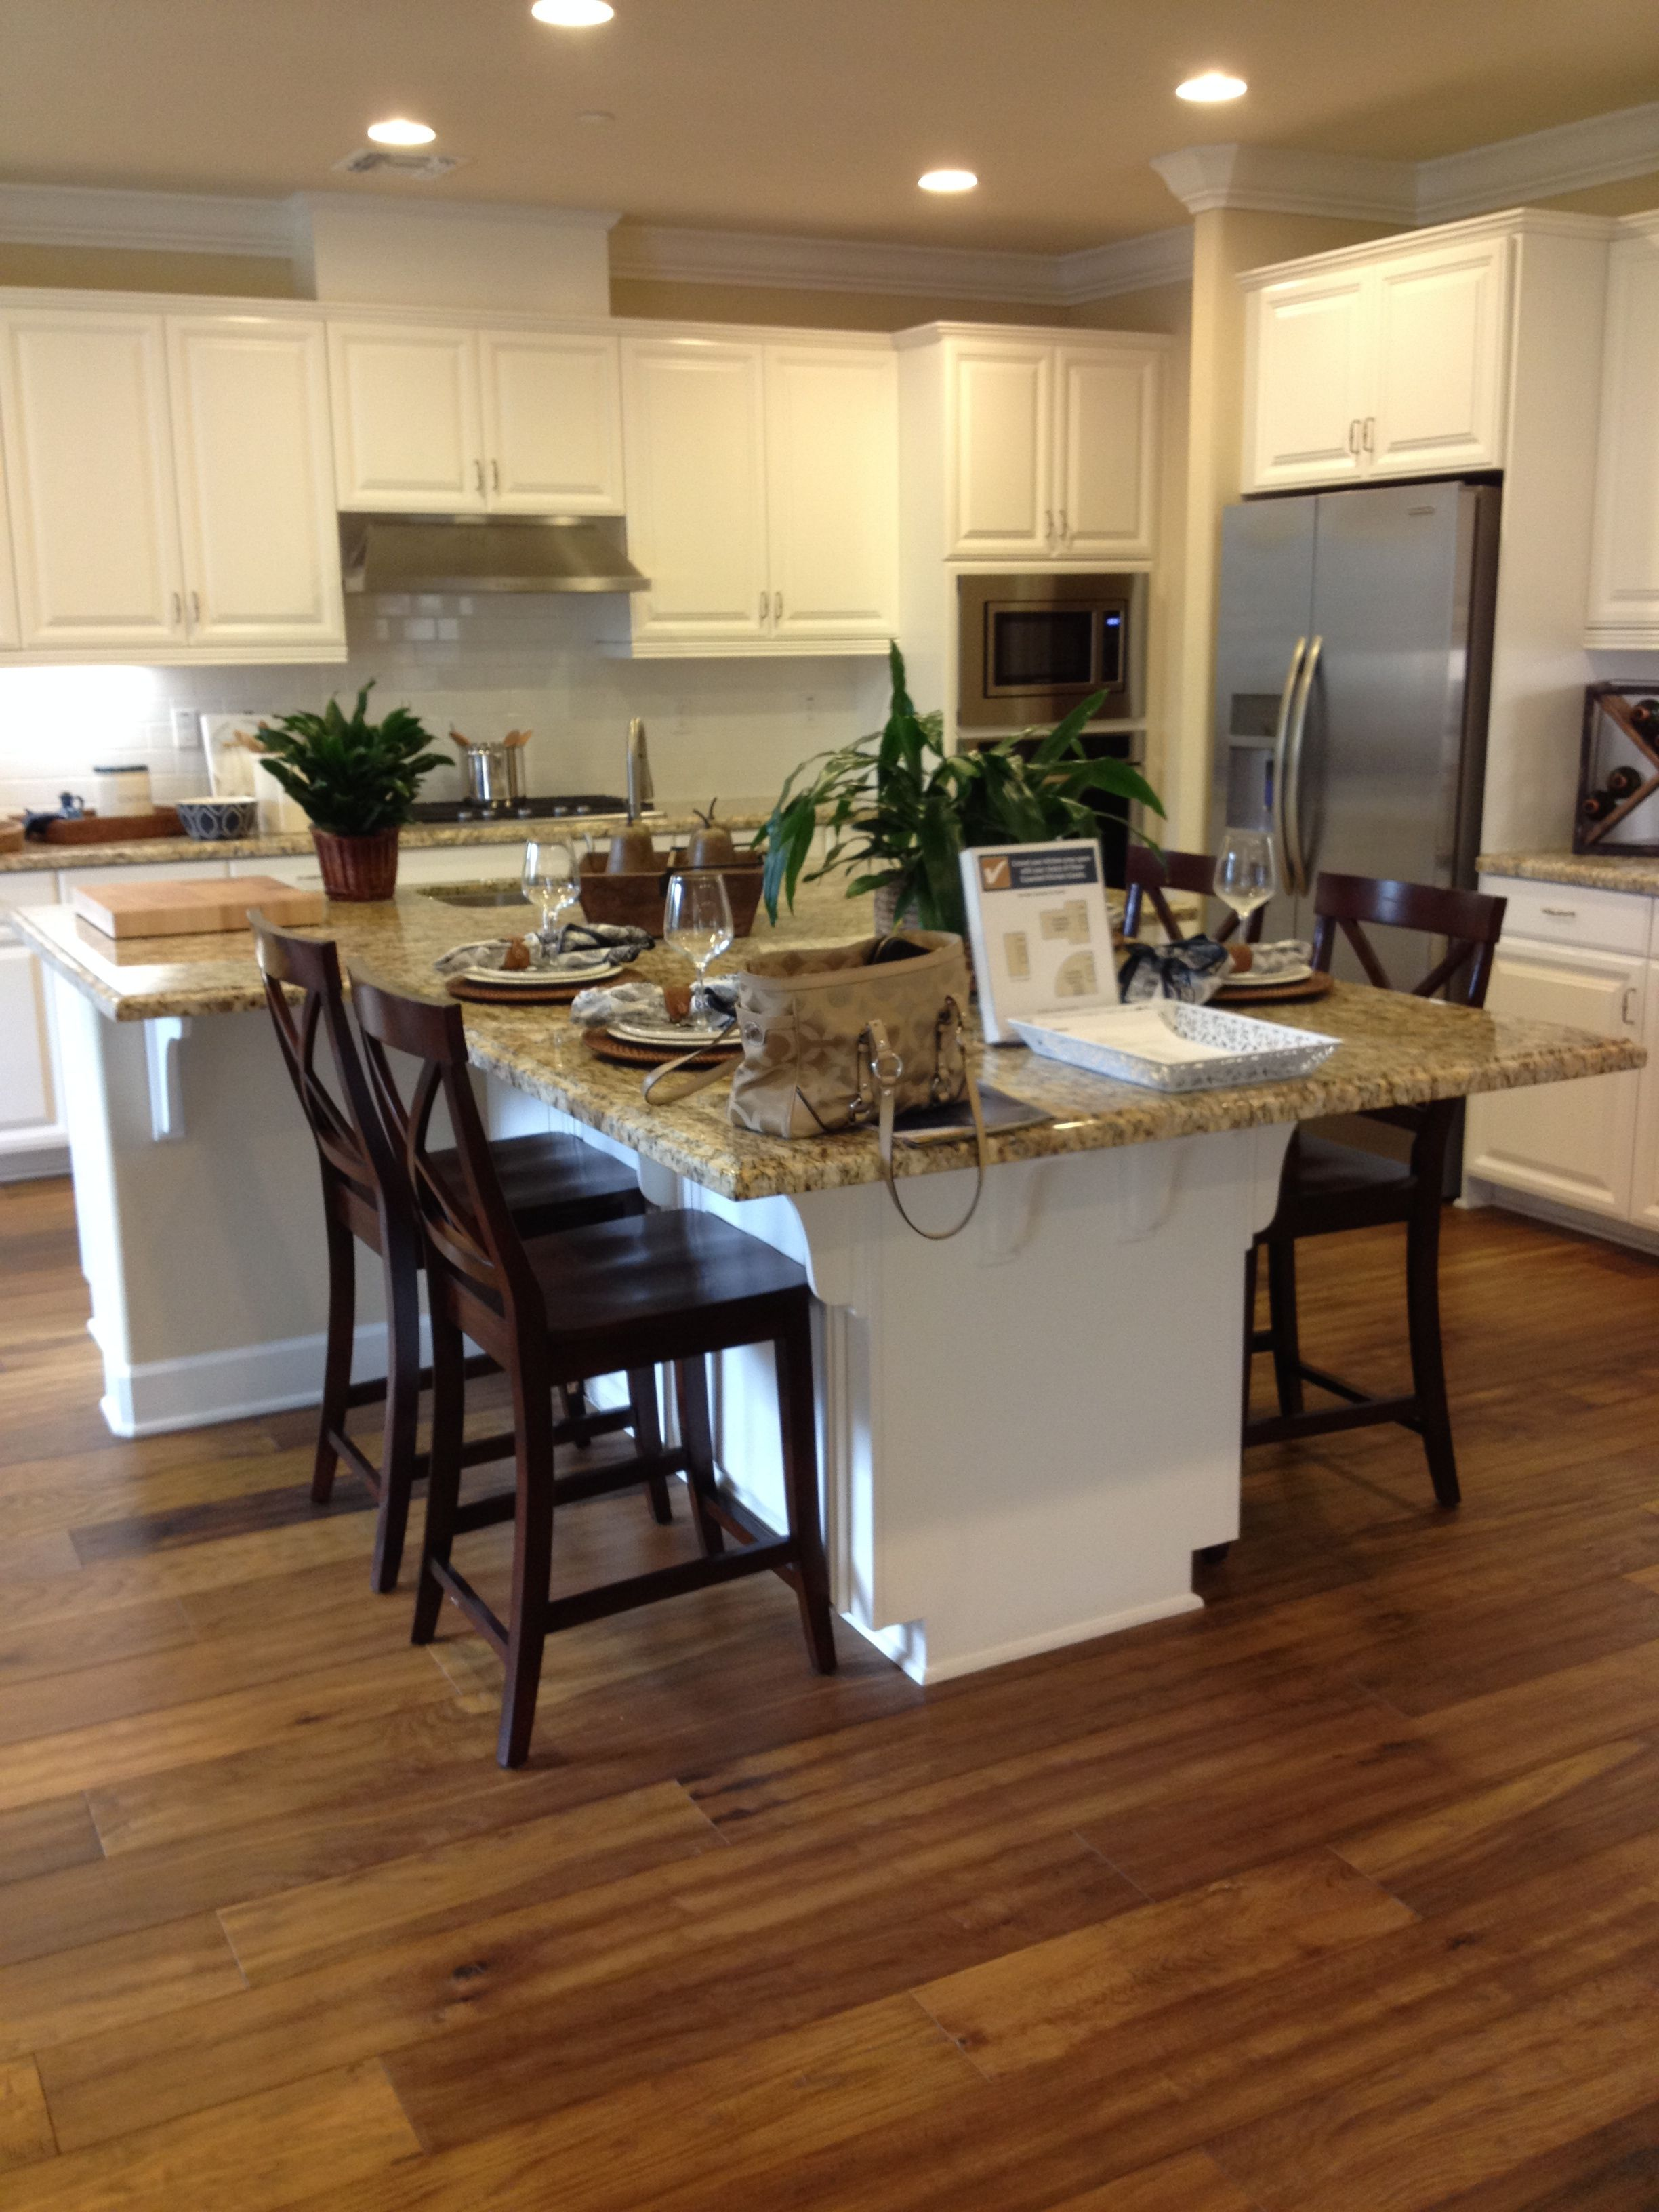 22 Unique Diy Kitchen Island Ideas: Ideas For The House In 2019